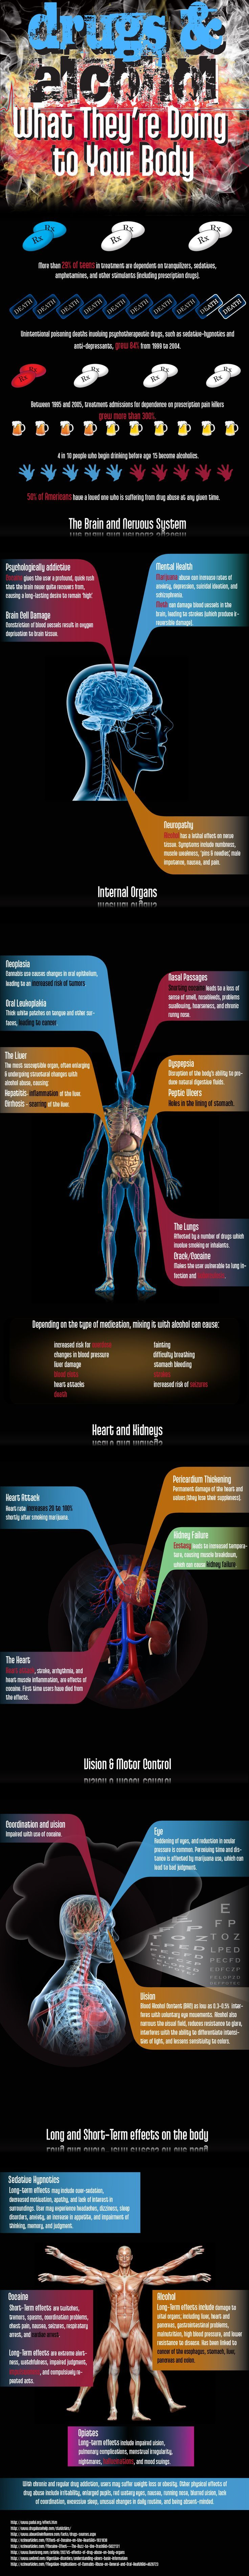 psychology-drugs-and-alcohol-what-they-are-doing-to-your-body-infographic